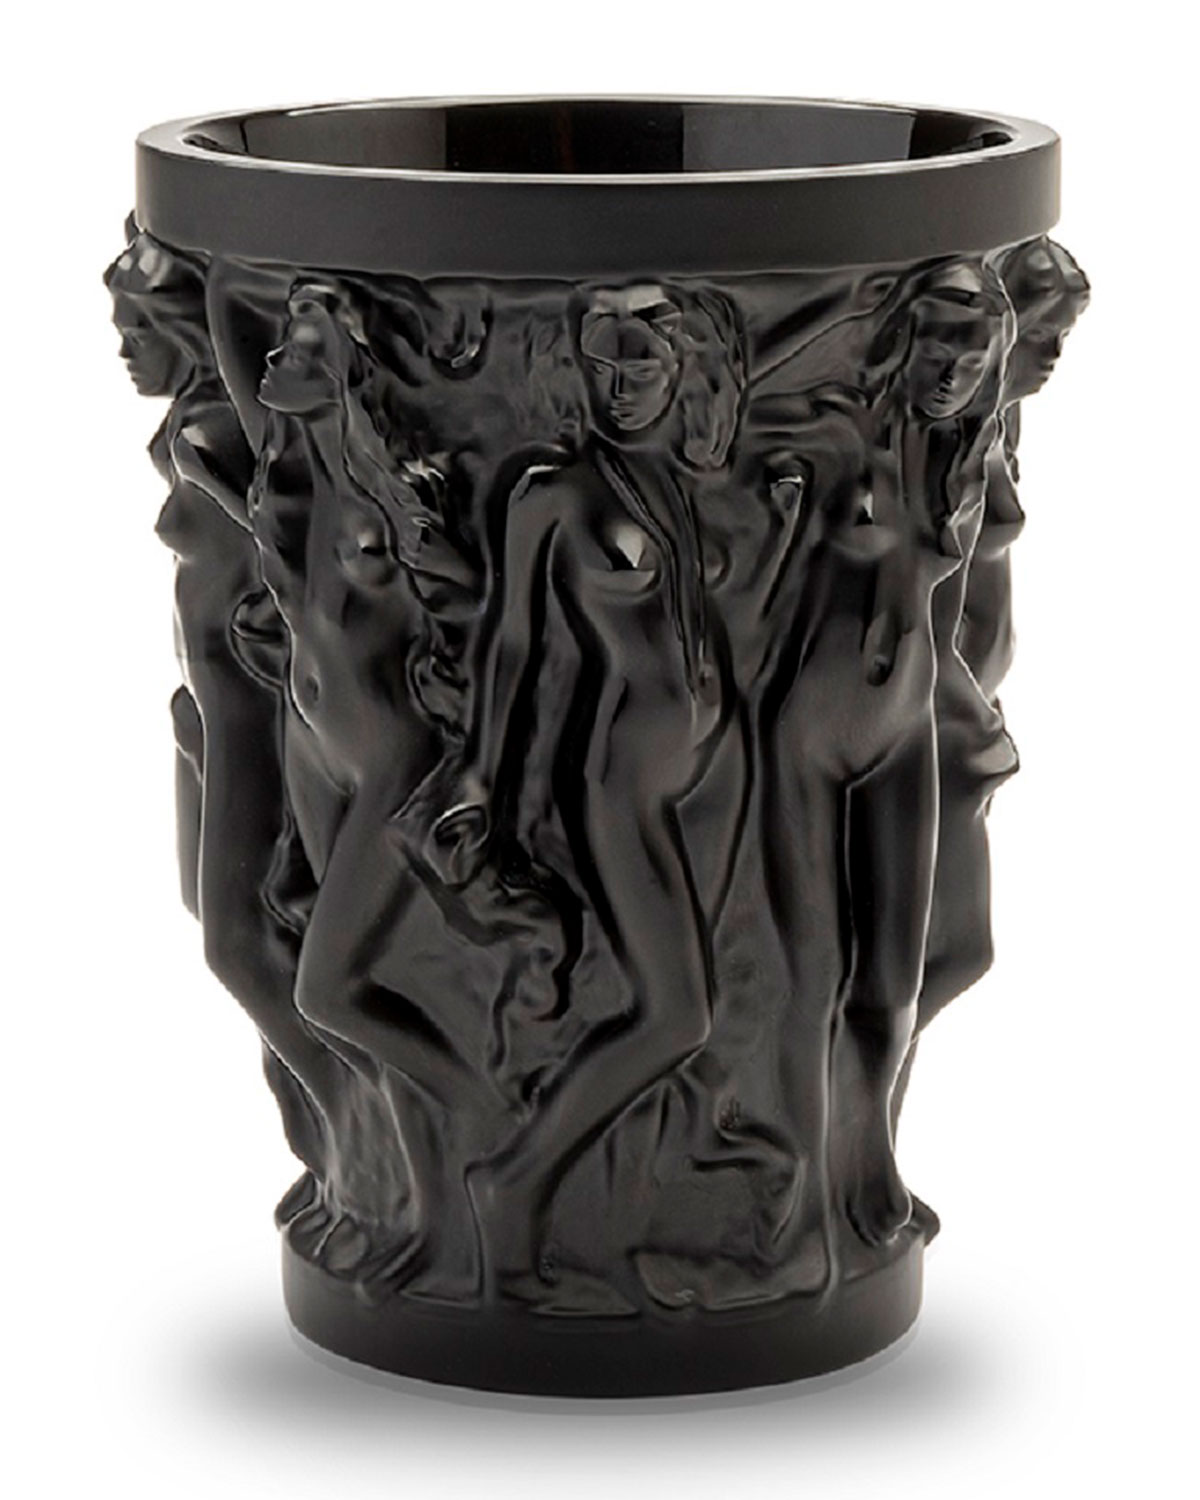 Lalique LIMITED EDITION SIRENES BLACK VASE BY TERRY RODGERS